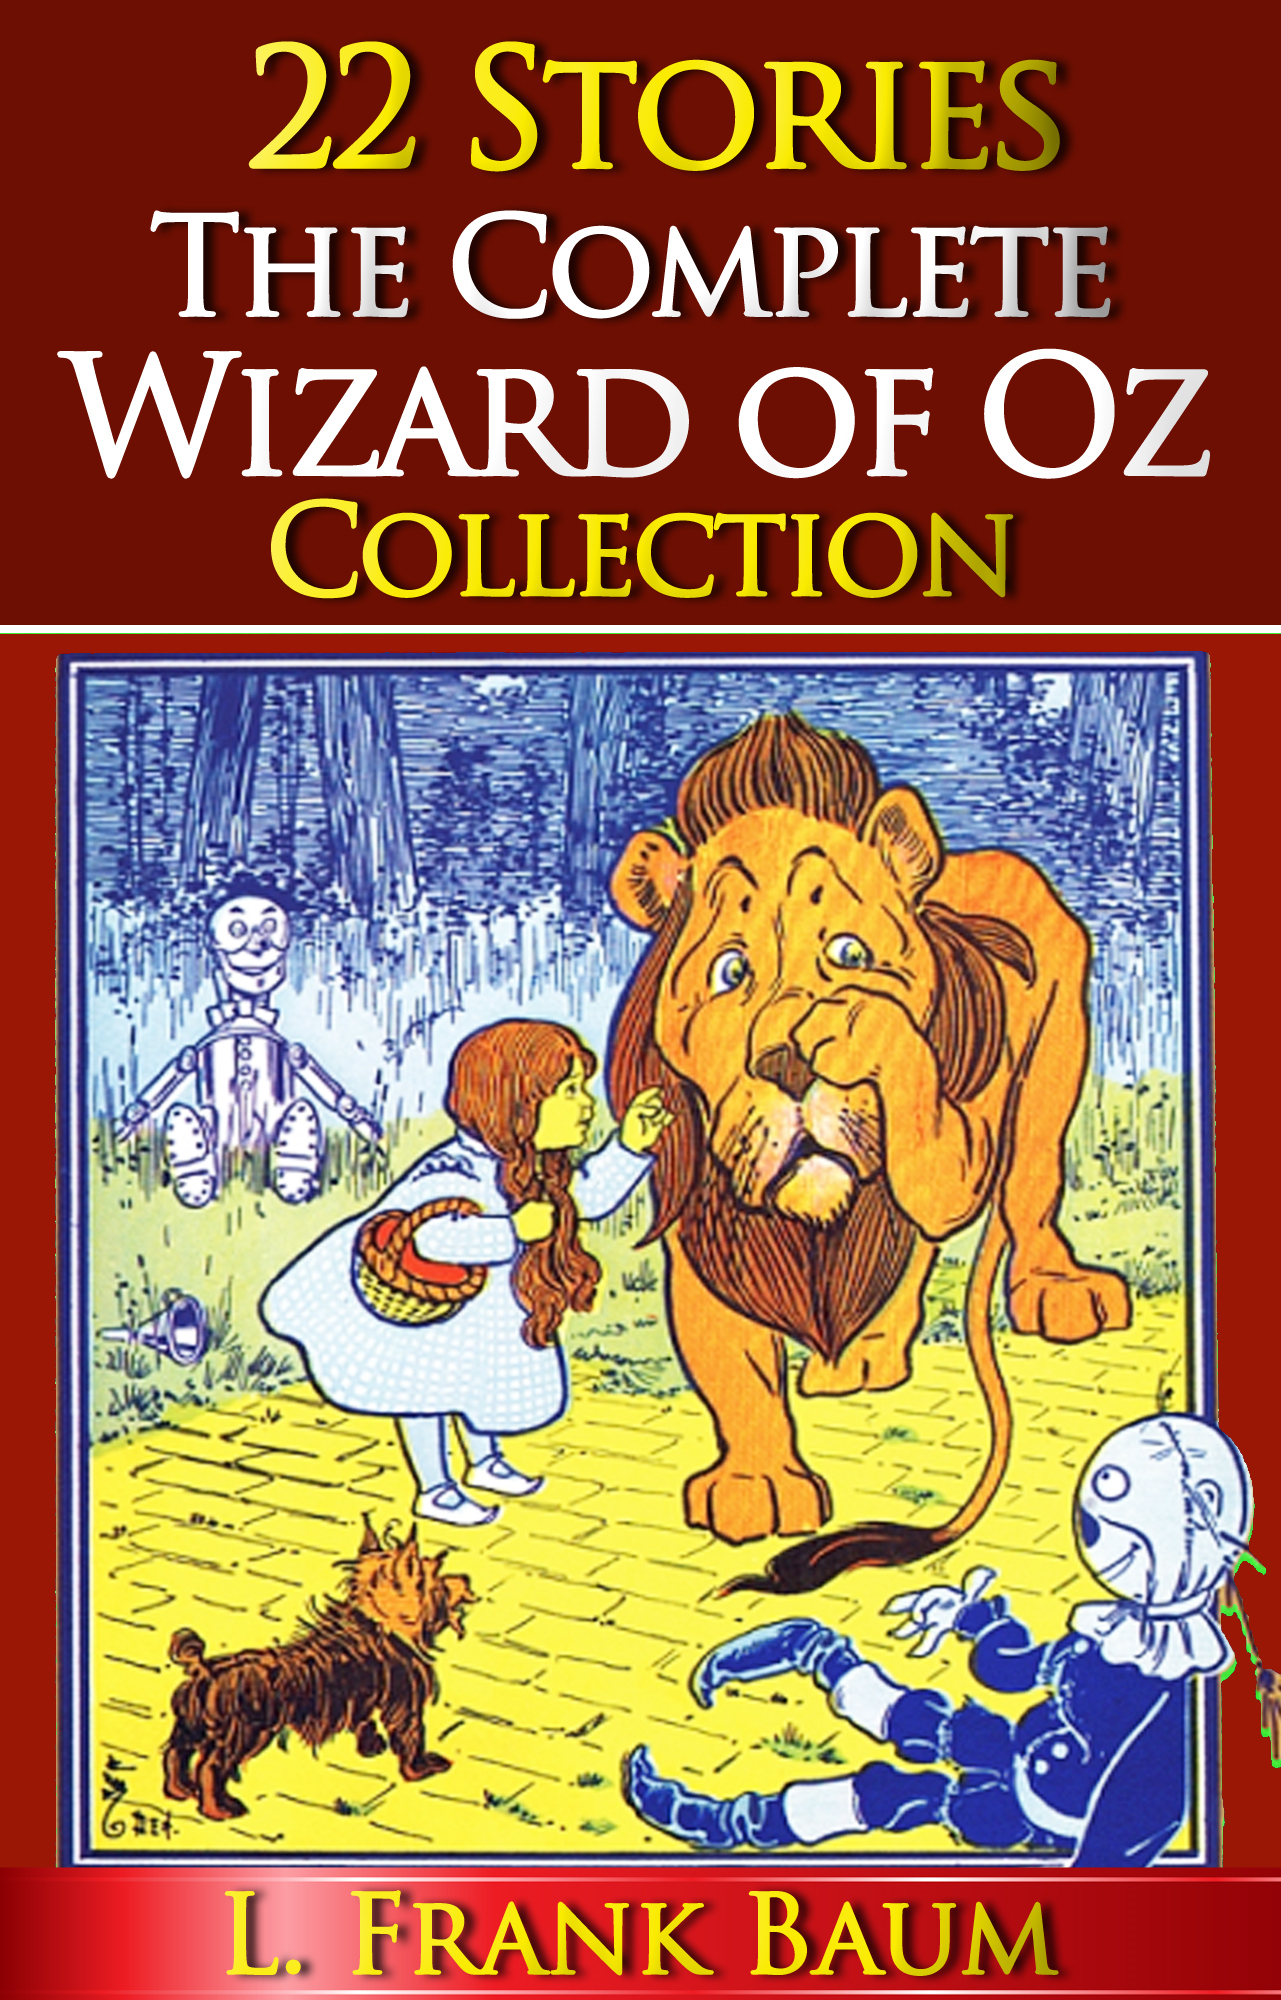 The Complete Wizard of Oz Collection (All 22 Stories With Active Table of Contents)